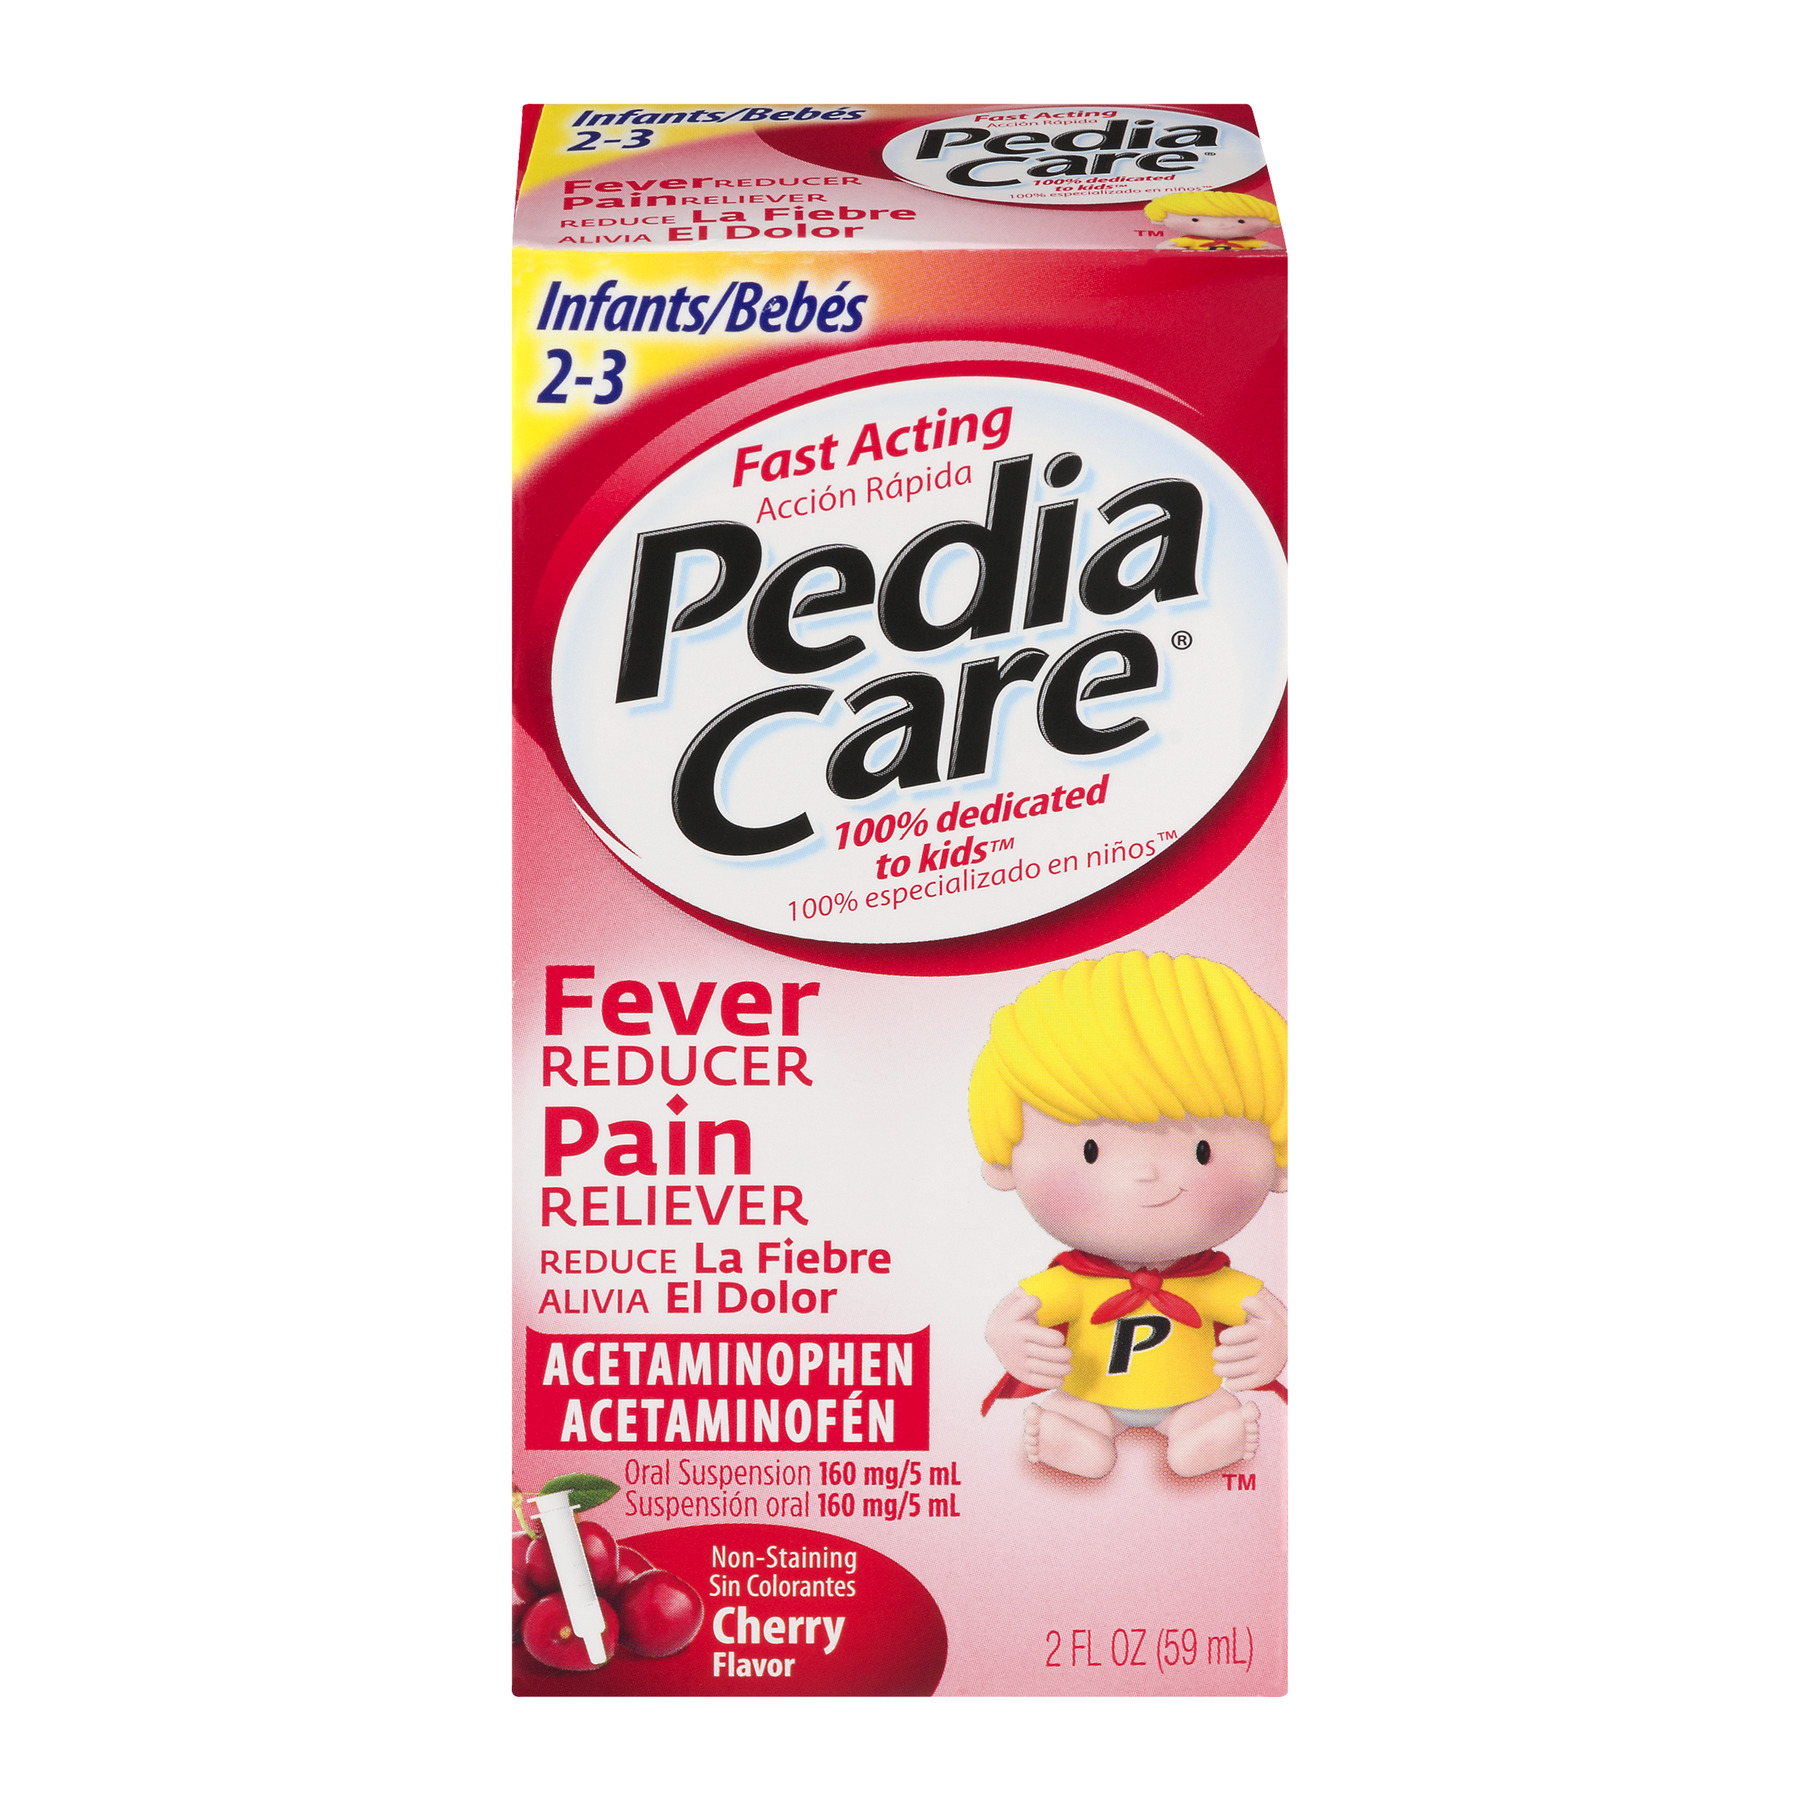 Pedia Care Fever Reducer Pain Reliever Cherry Flavor, 2.0 FL OZ